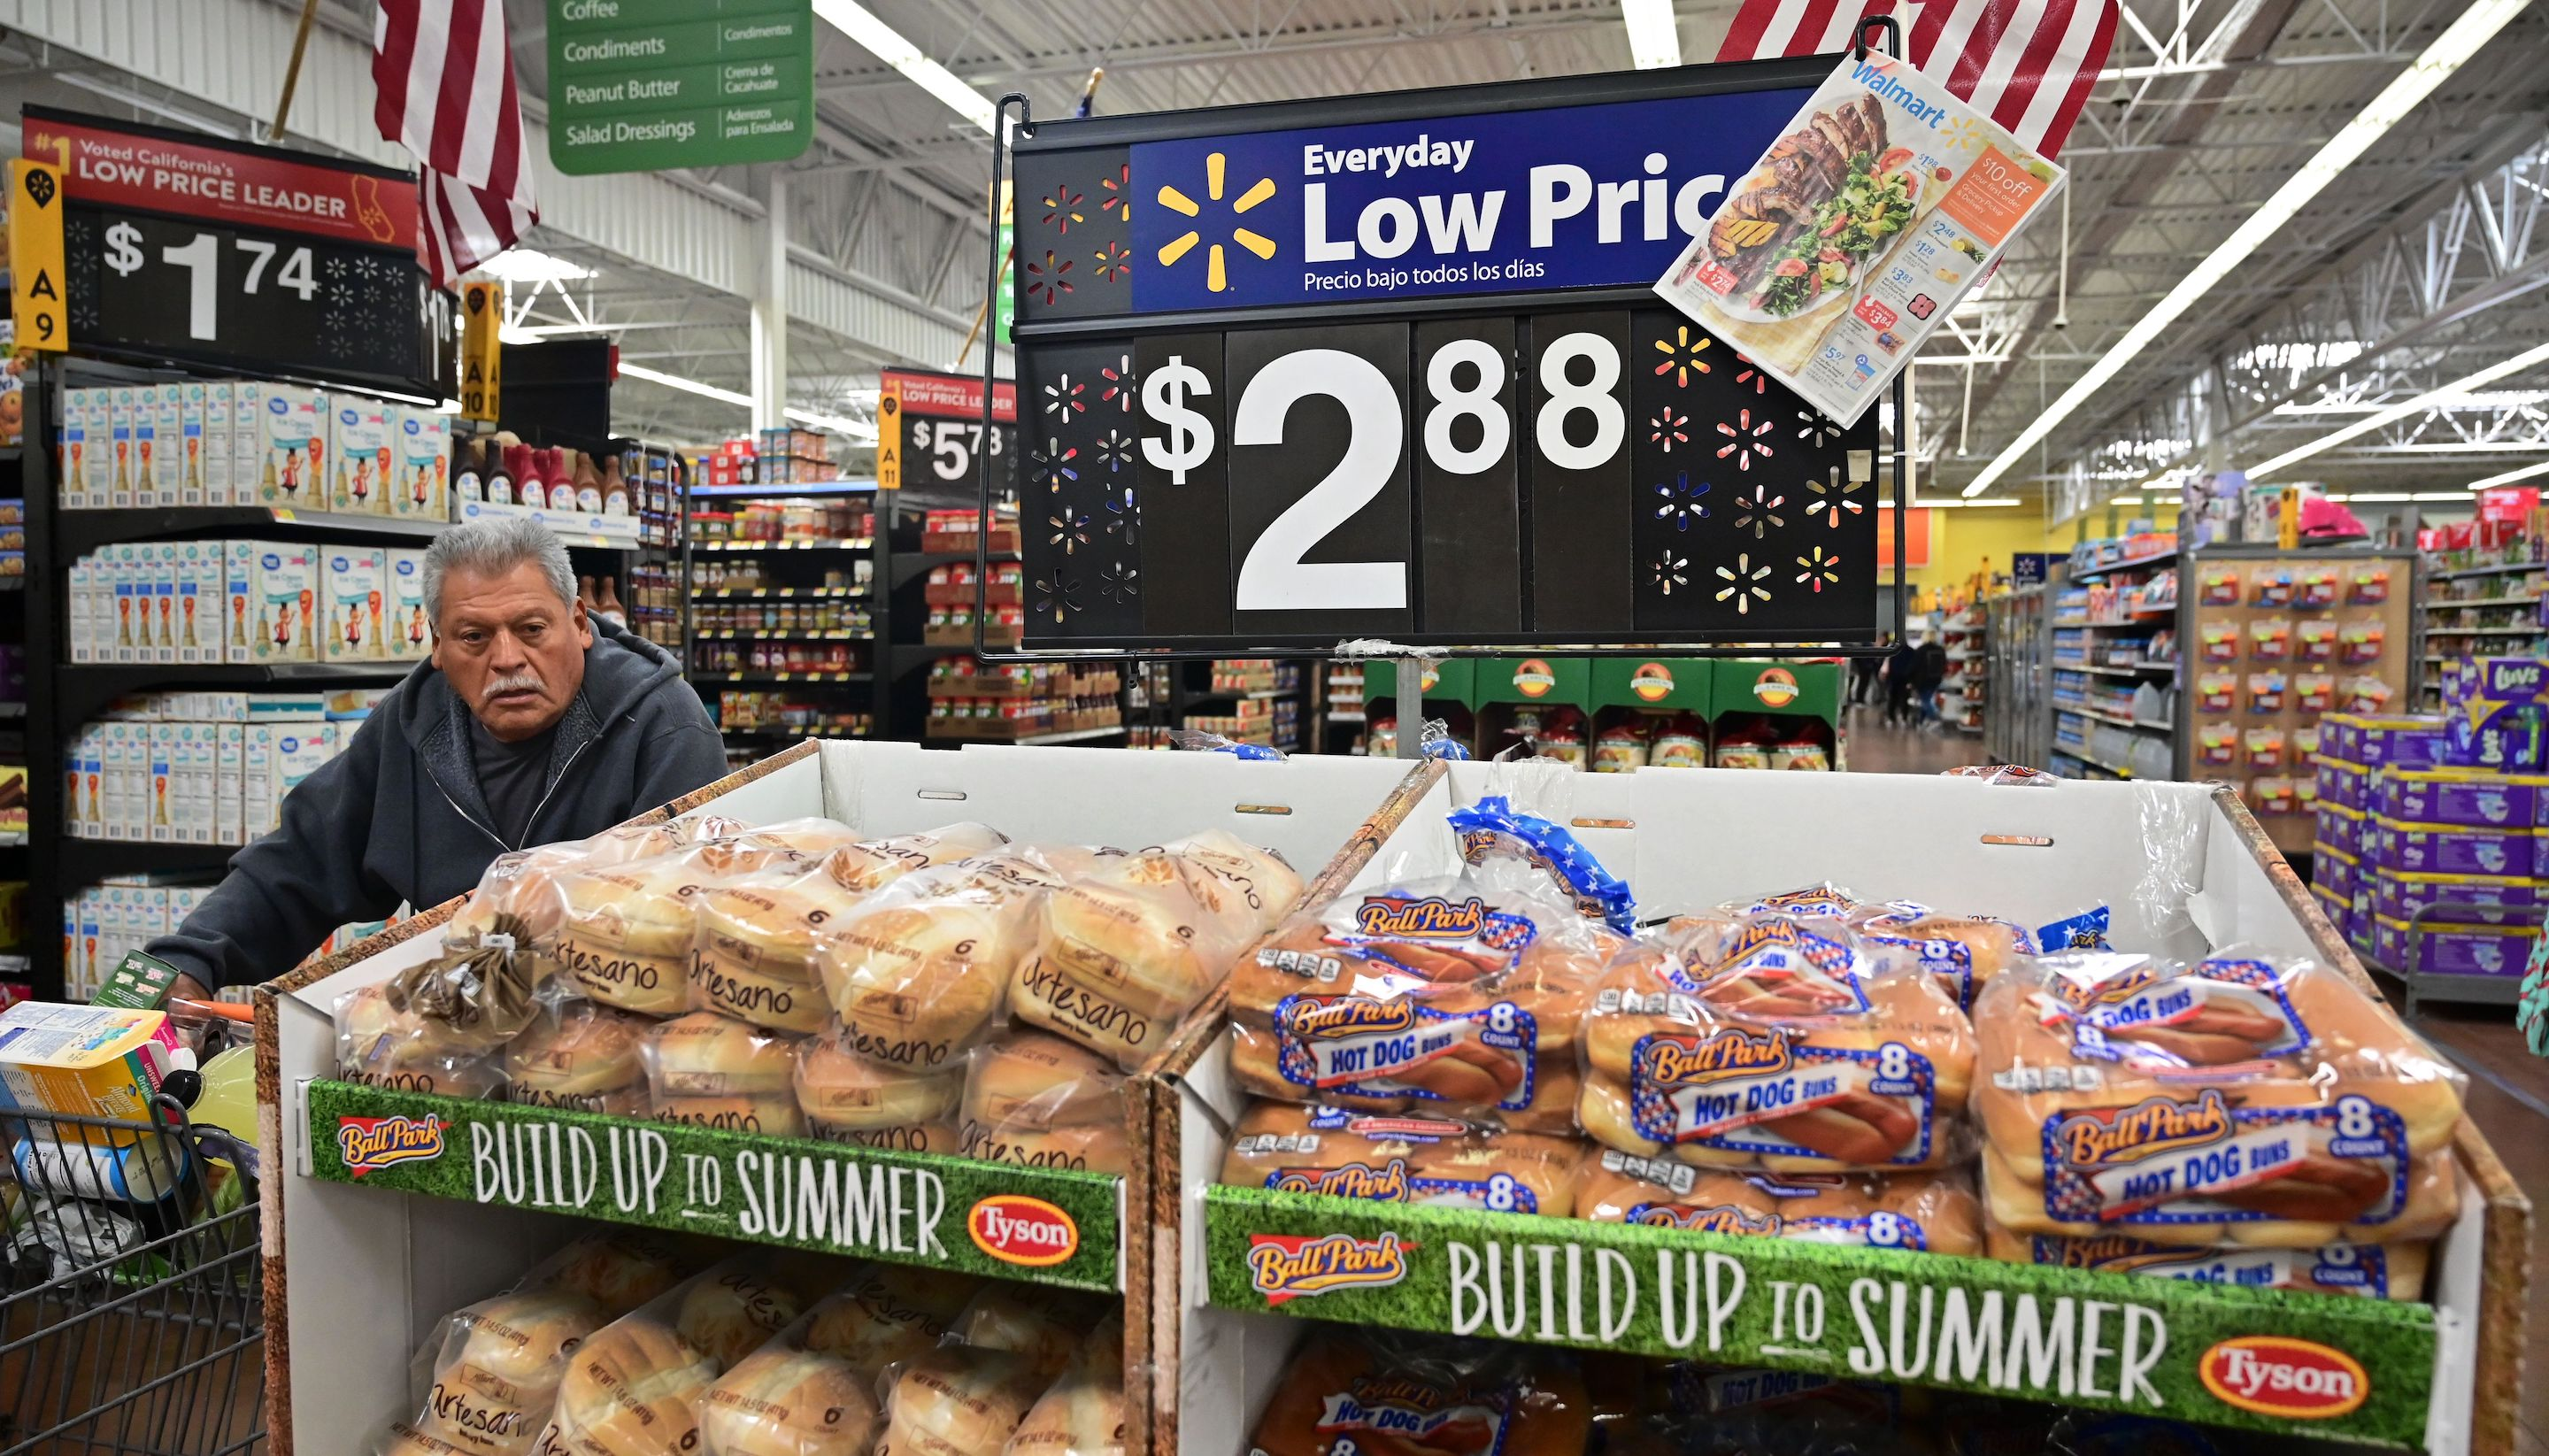 Walmart is facing higher costs, and a decision of how prices might reflect the increase.